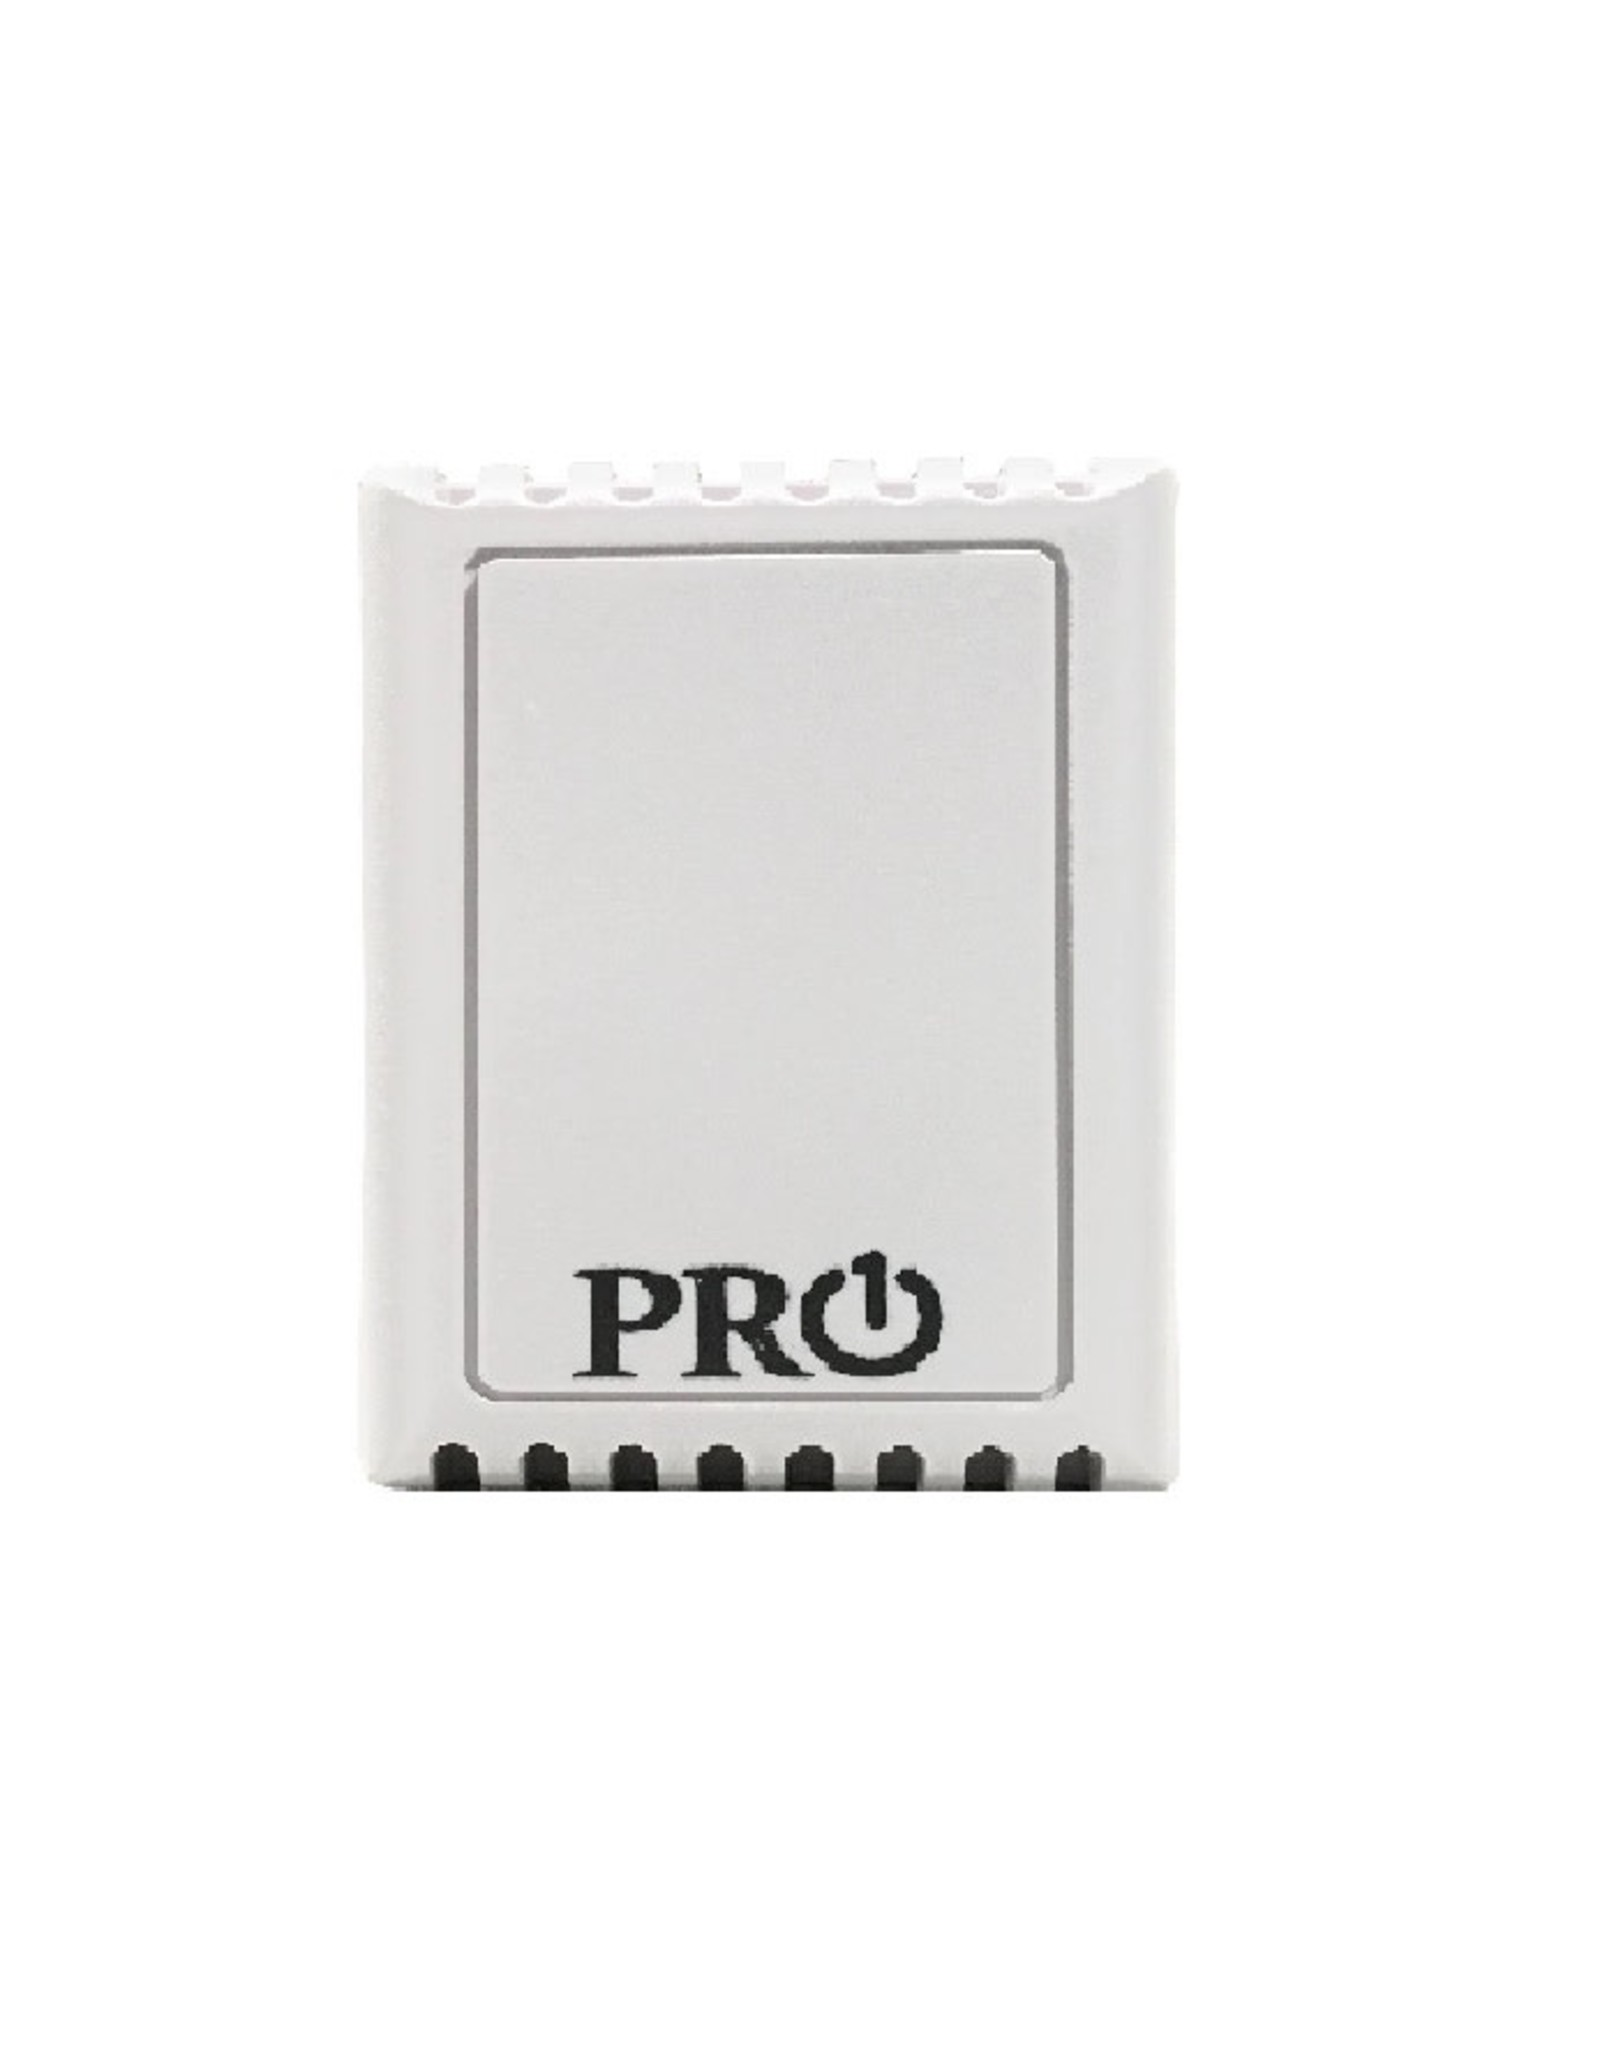 Pro1 Indoor Temperature Remote Sensor.  Accesory for T755S, T855S and T955S